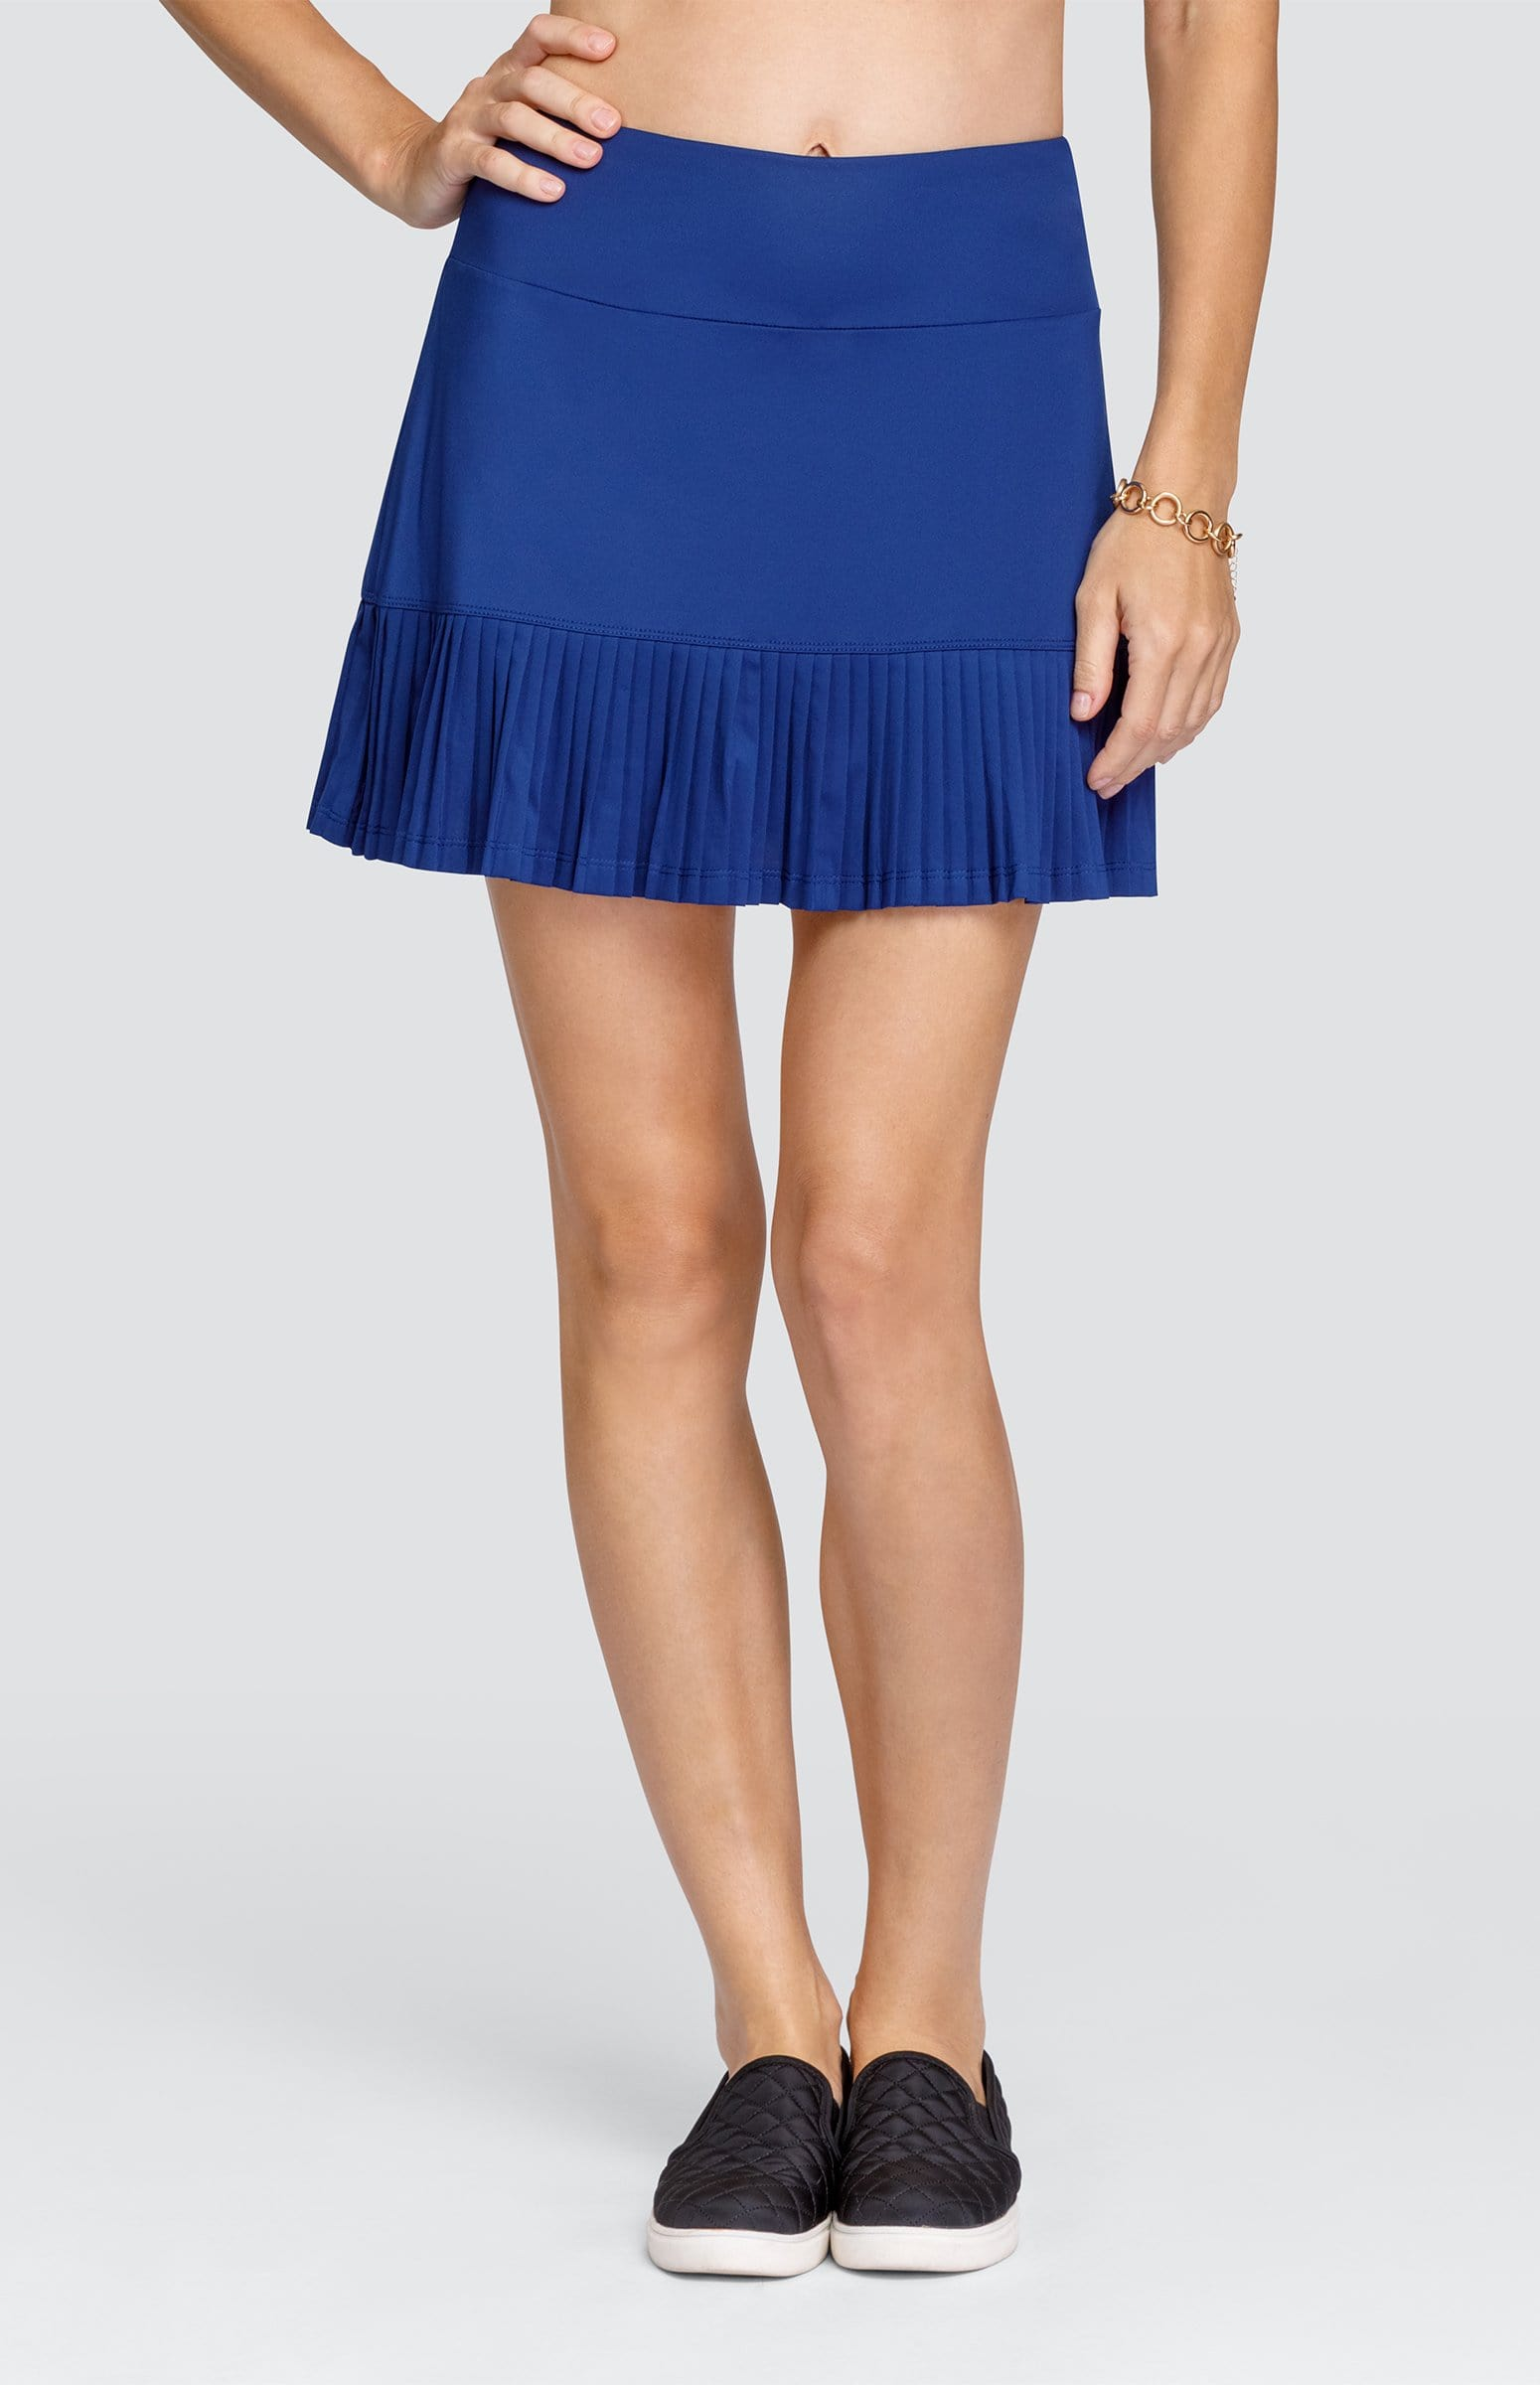 Nix Skort - Blue Depths - 16